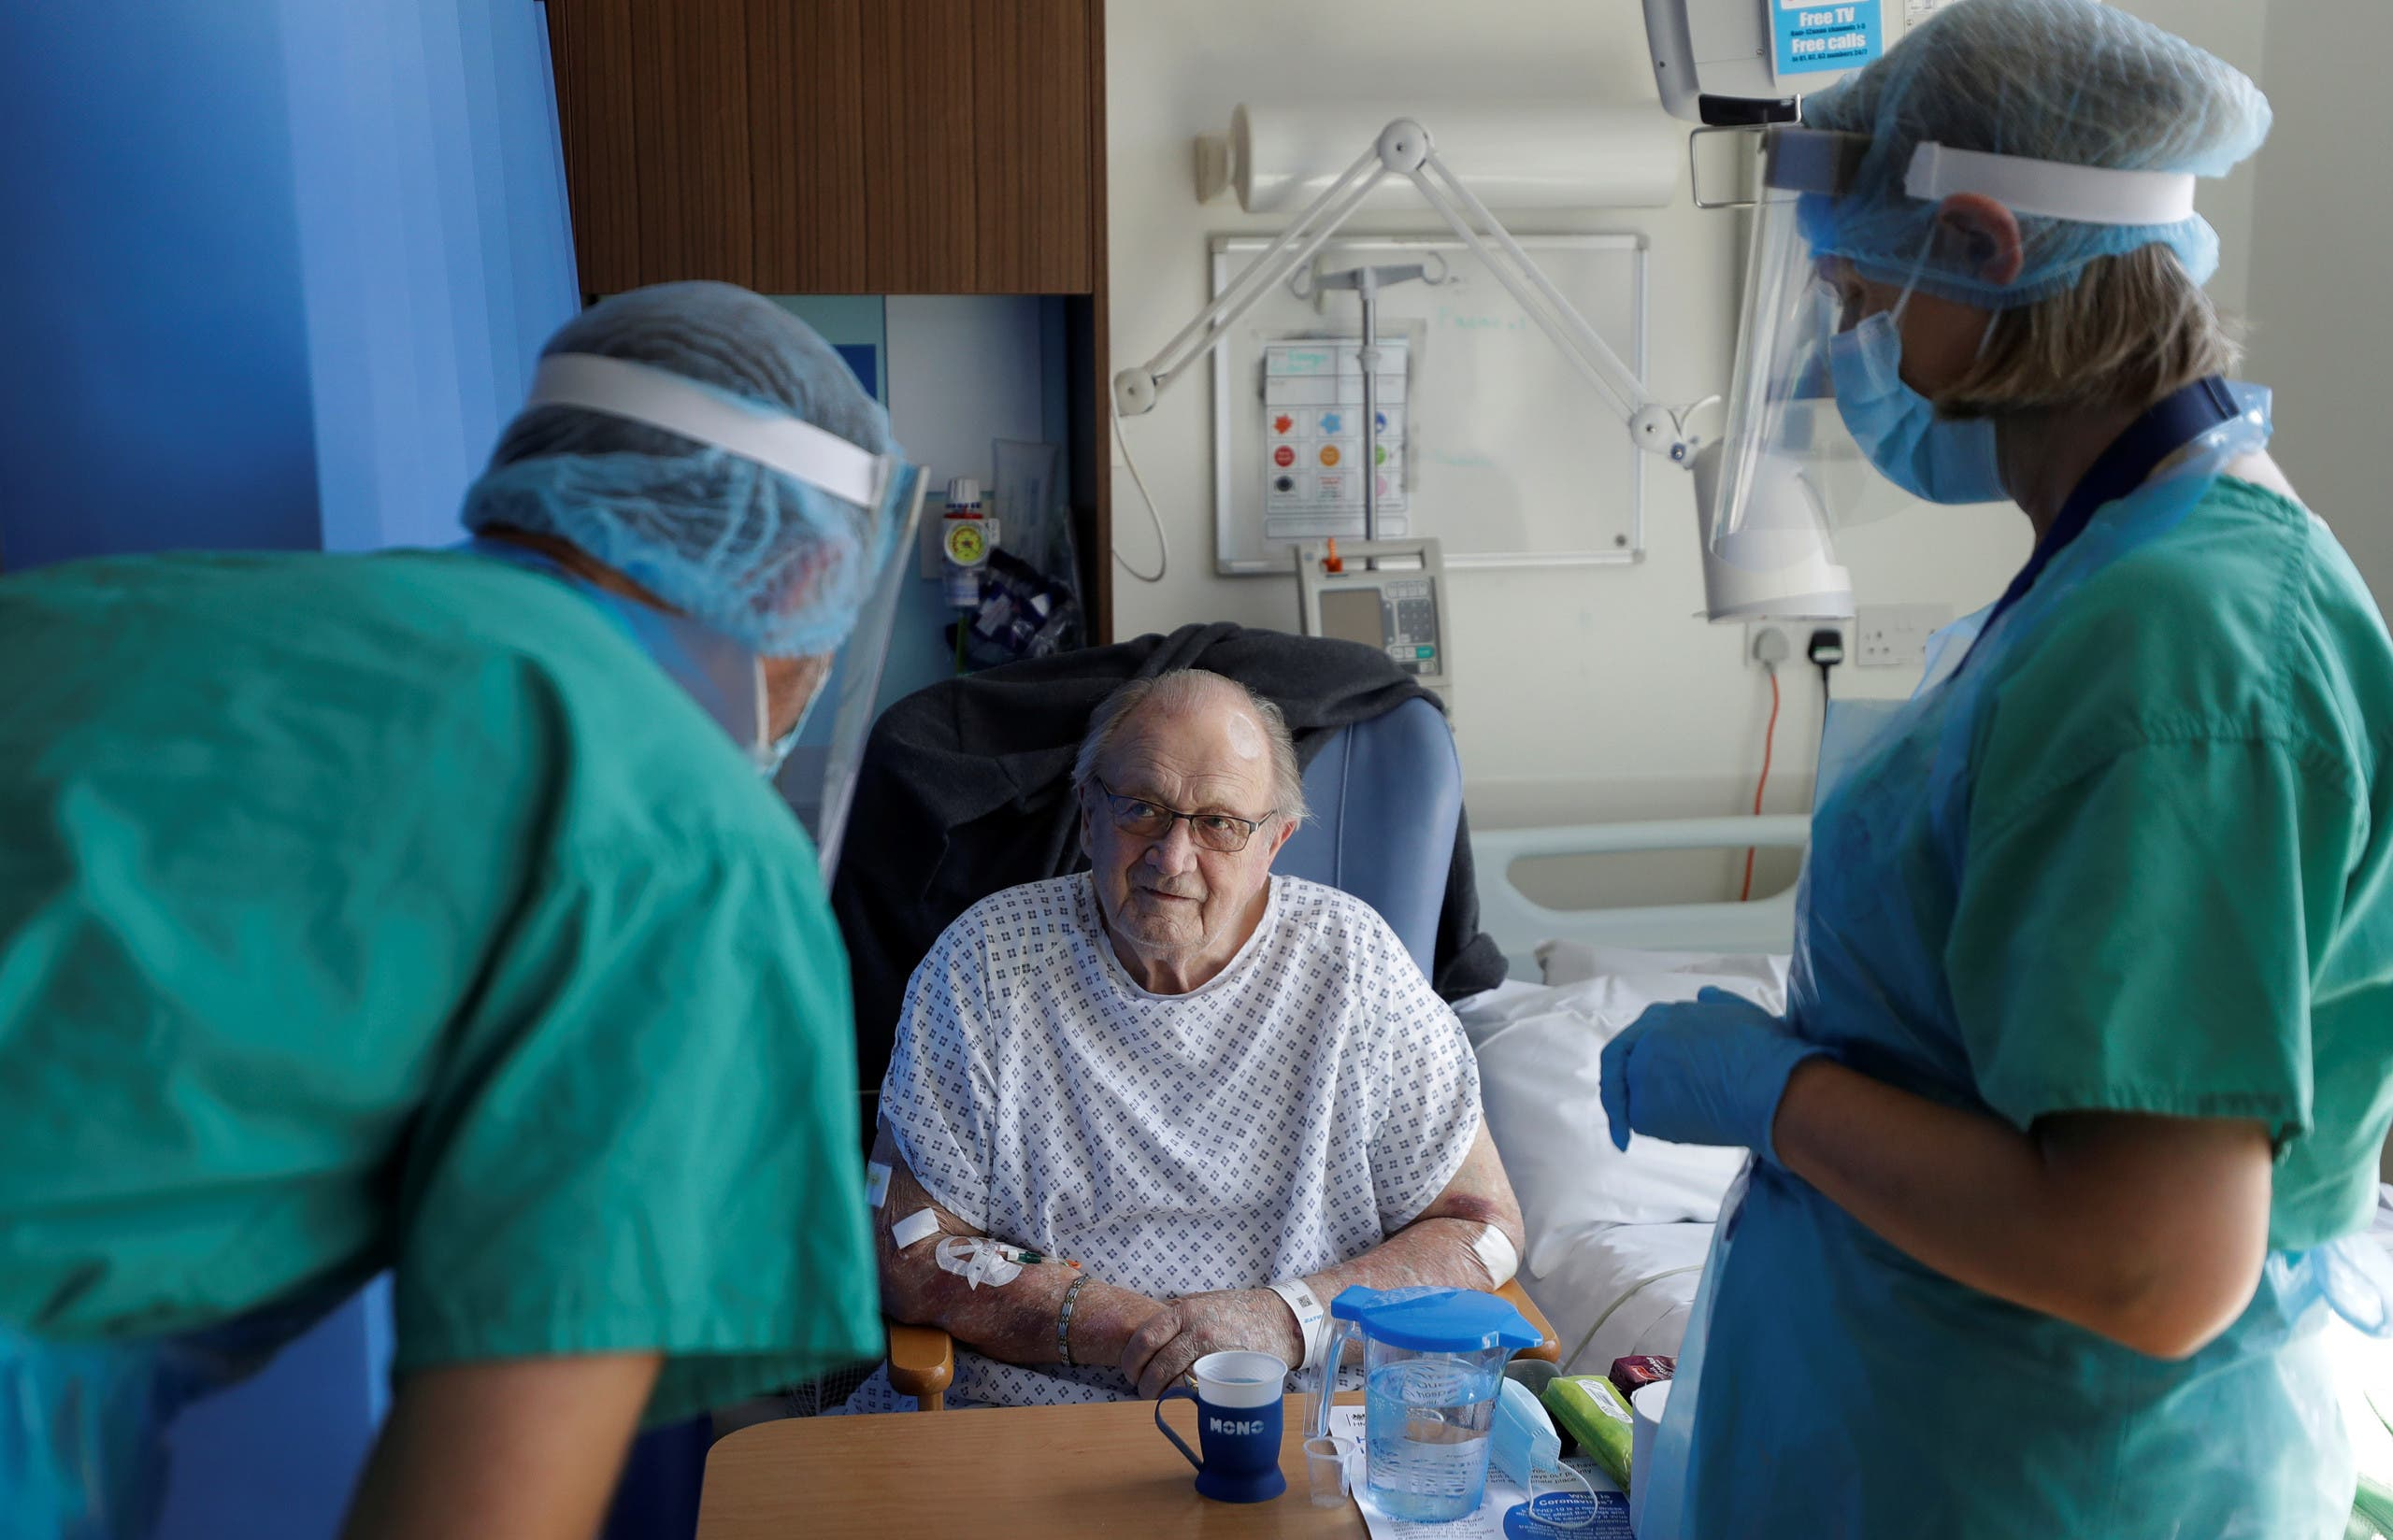 Coronavirus patient George Gilbert, 85 who is part of the TACTIC-R trial, is treated at Addenbrooke's hospital in Cambridge, Britain. (Reuters)